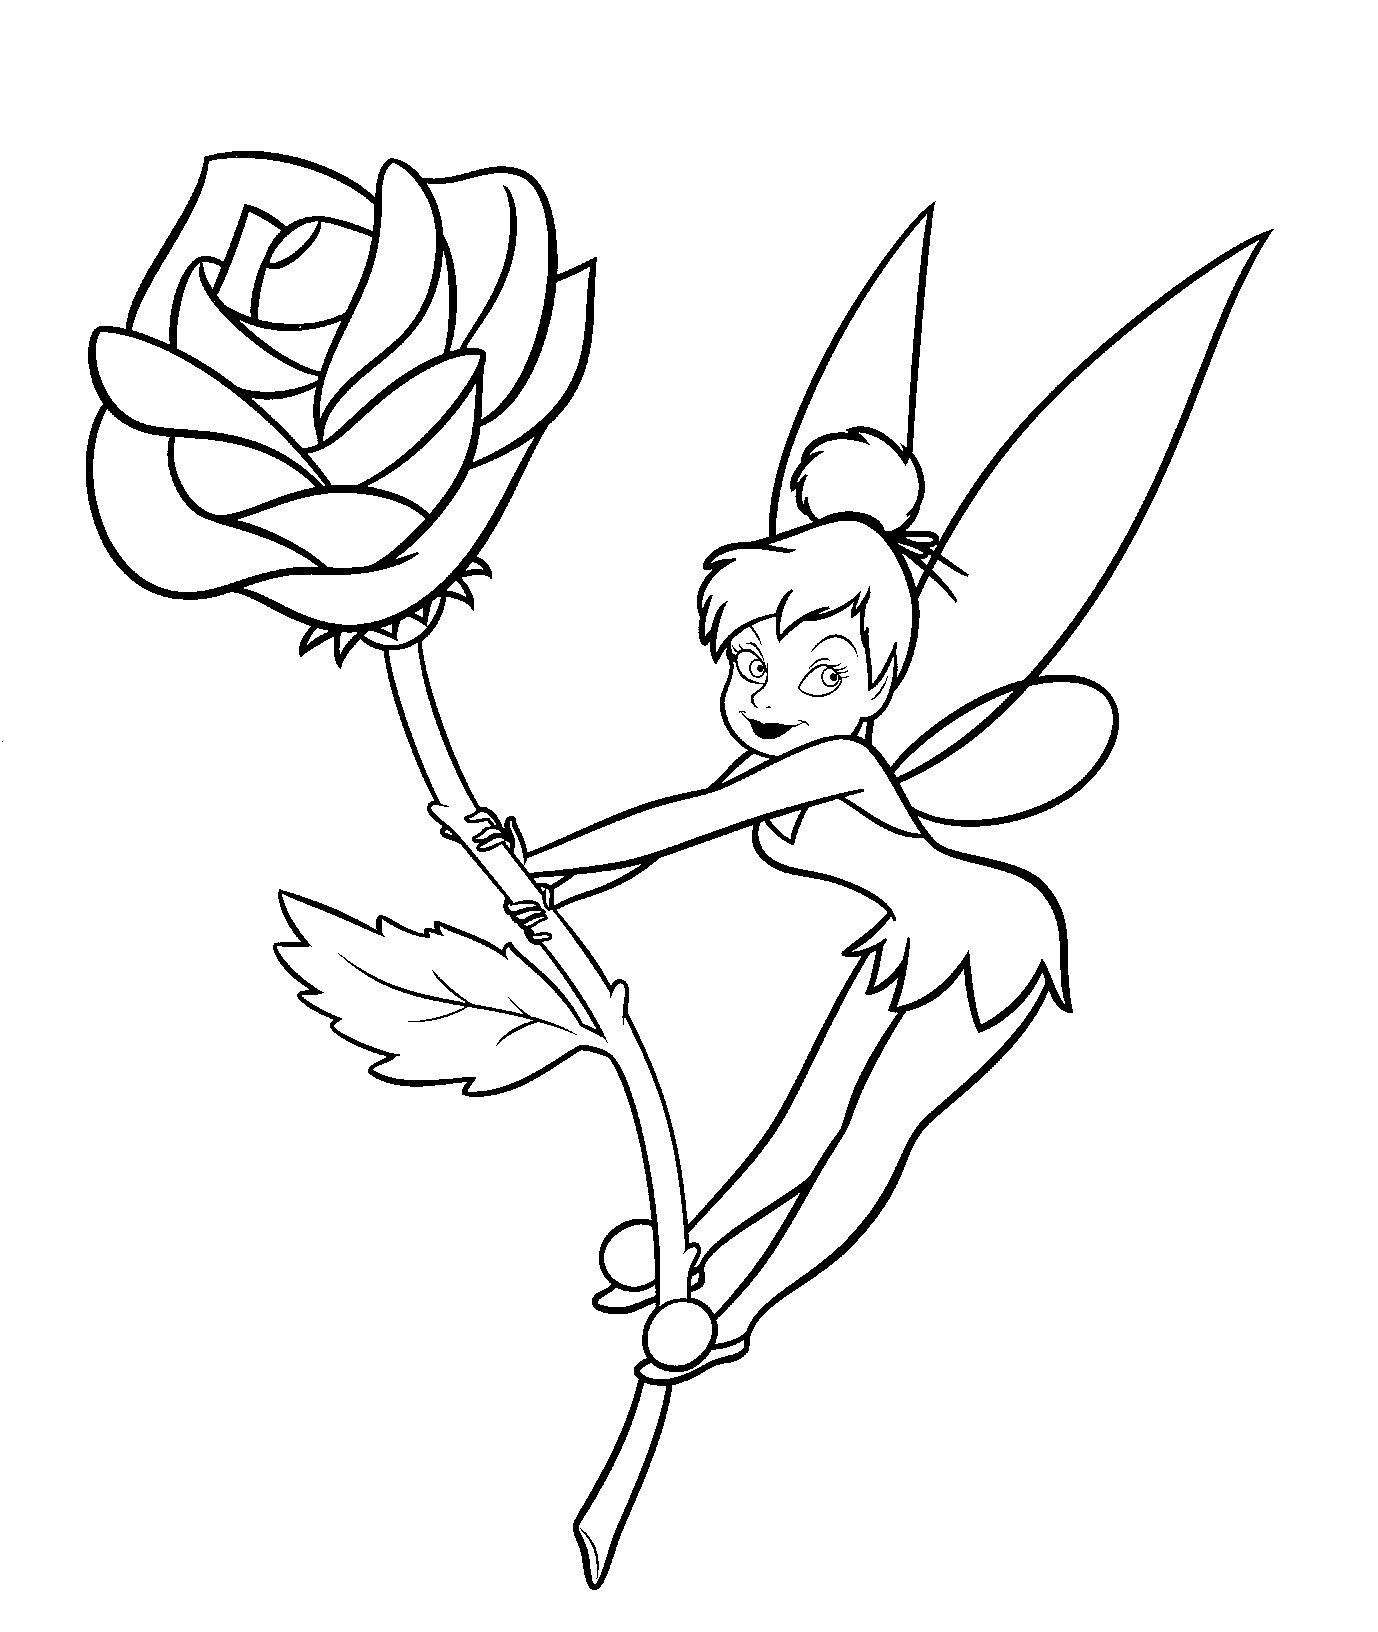 Tinker Bell Coloring Pages For Girls  Tinkerbell Coloring Pages